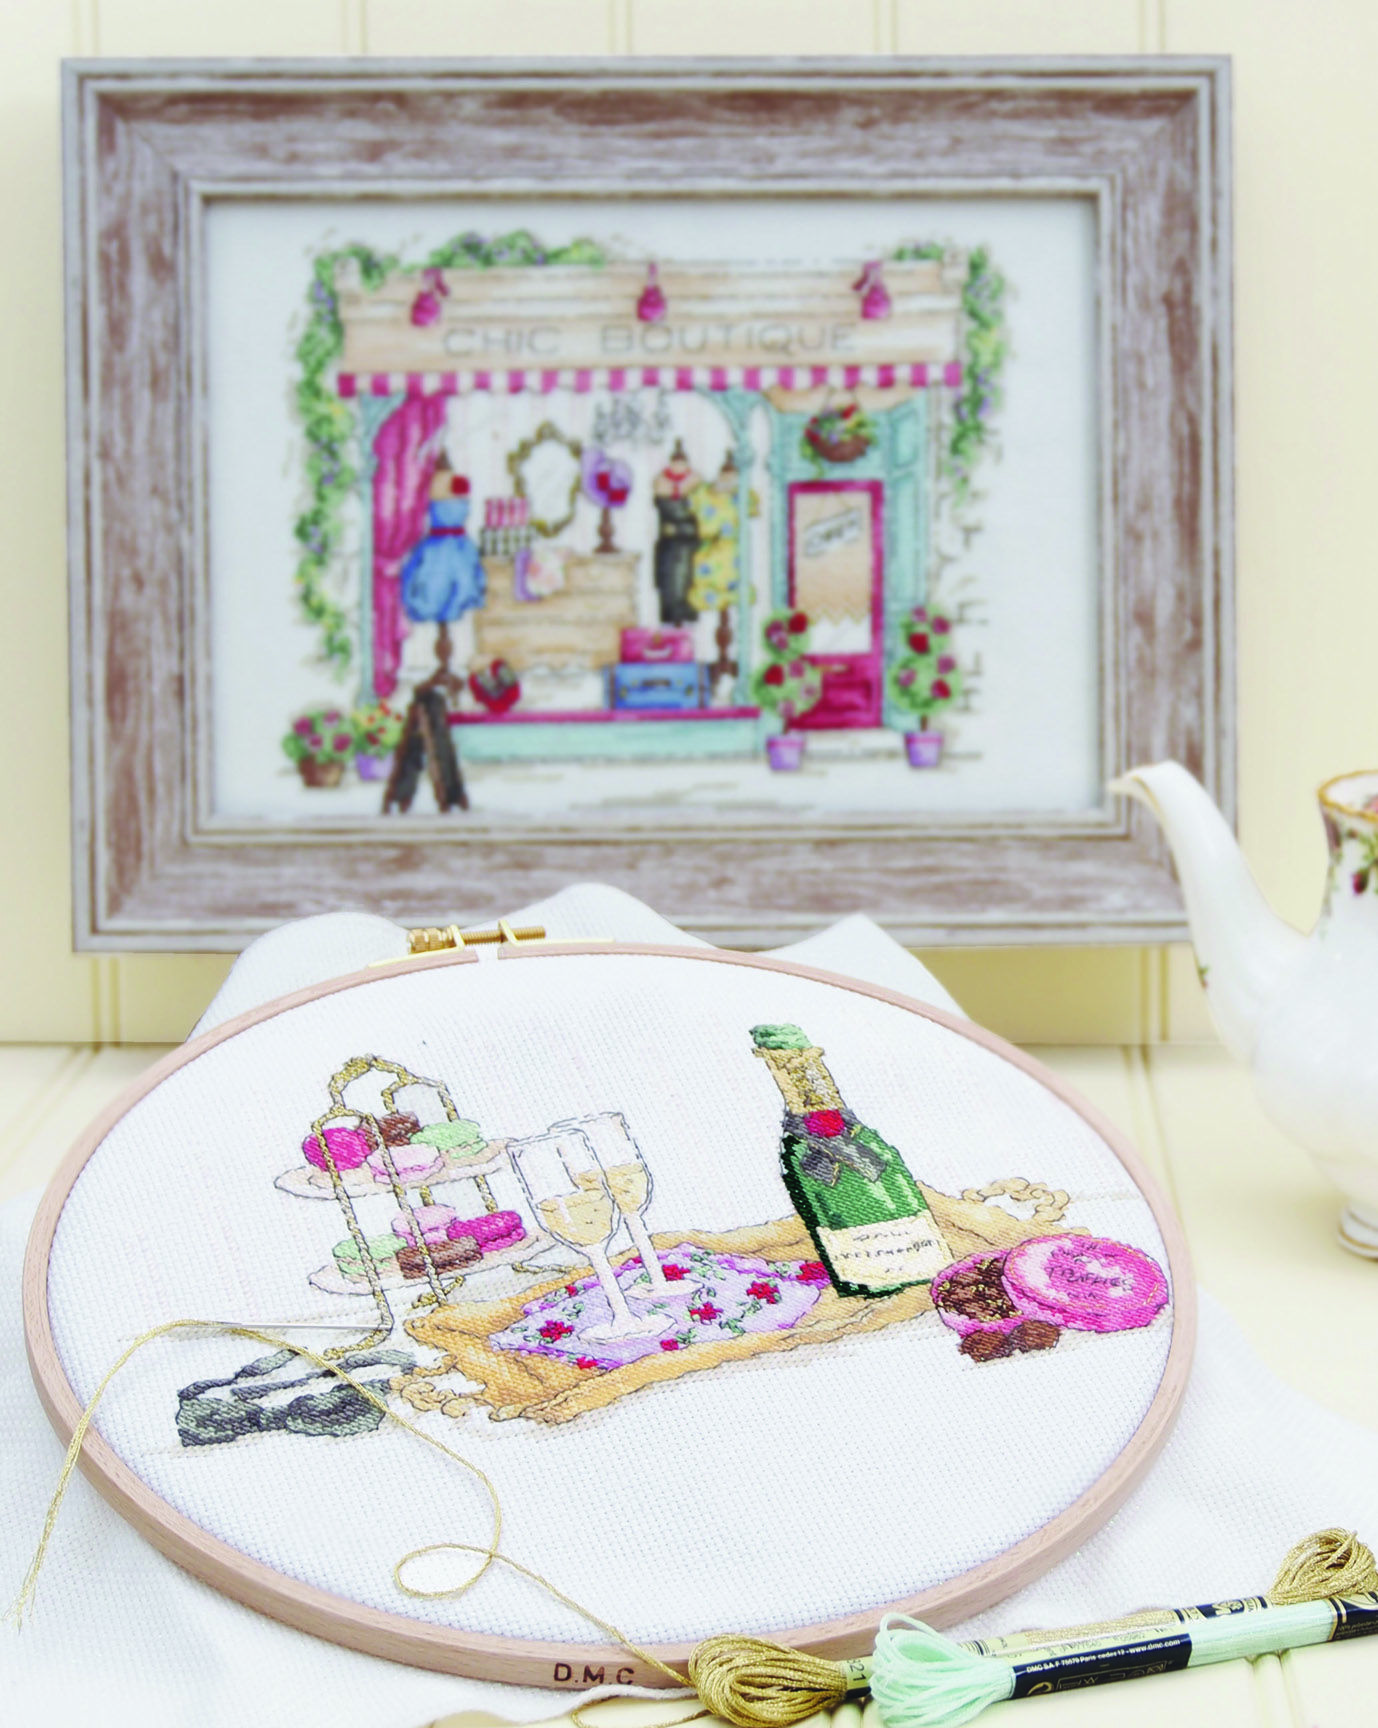 Vintage chic cross-stitch from DMC Creative in mother's day feature